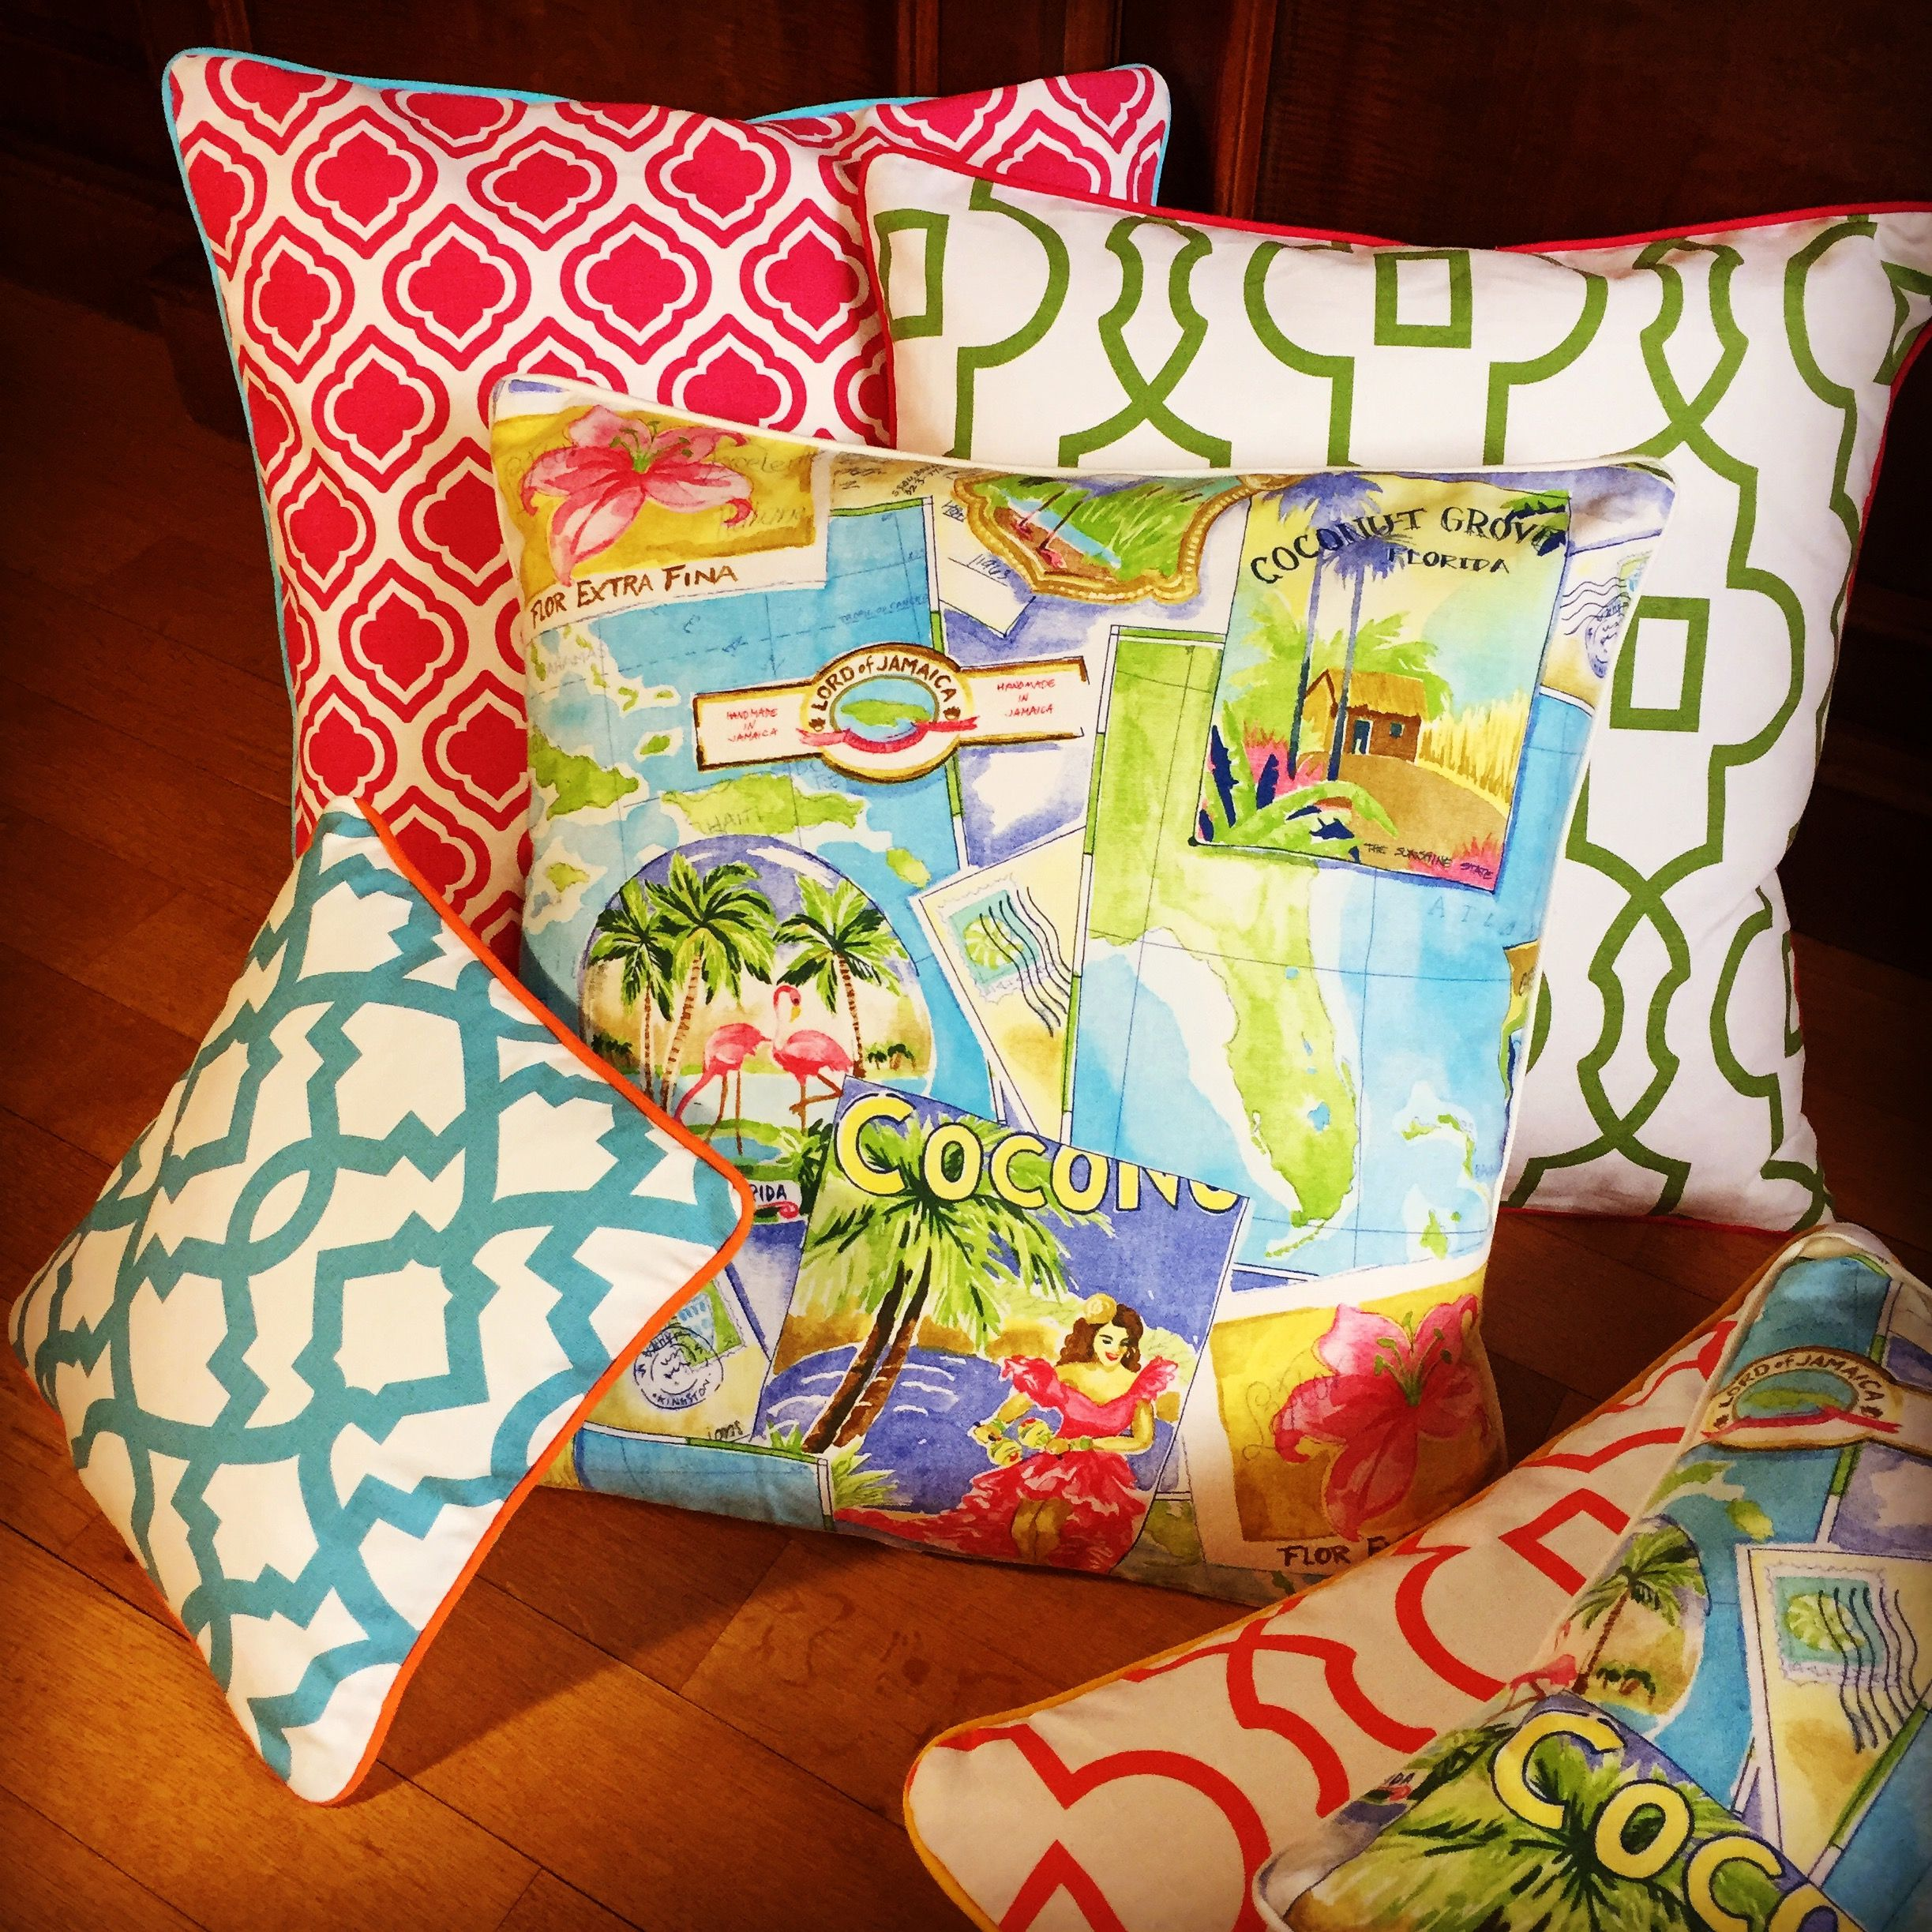 Sunshine pillows its still cold outside cheer up your home with sunshine pillows its still cold outside cheer up your home with greetings from florida kristyandbryce Image collections